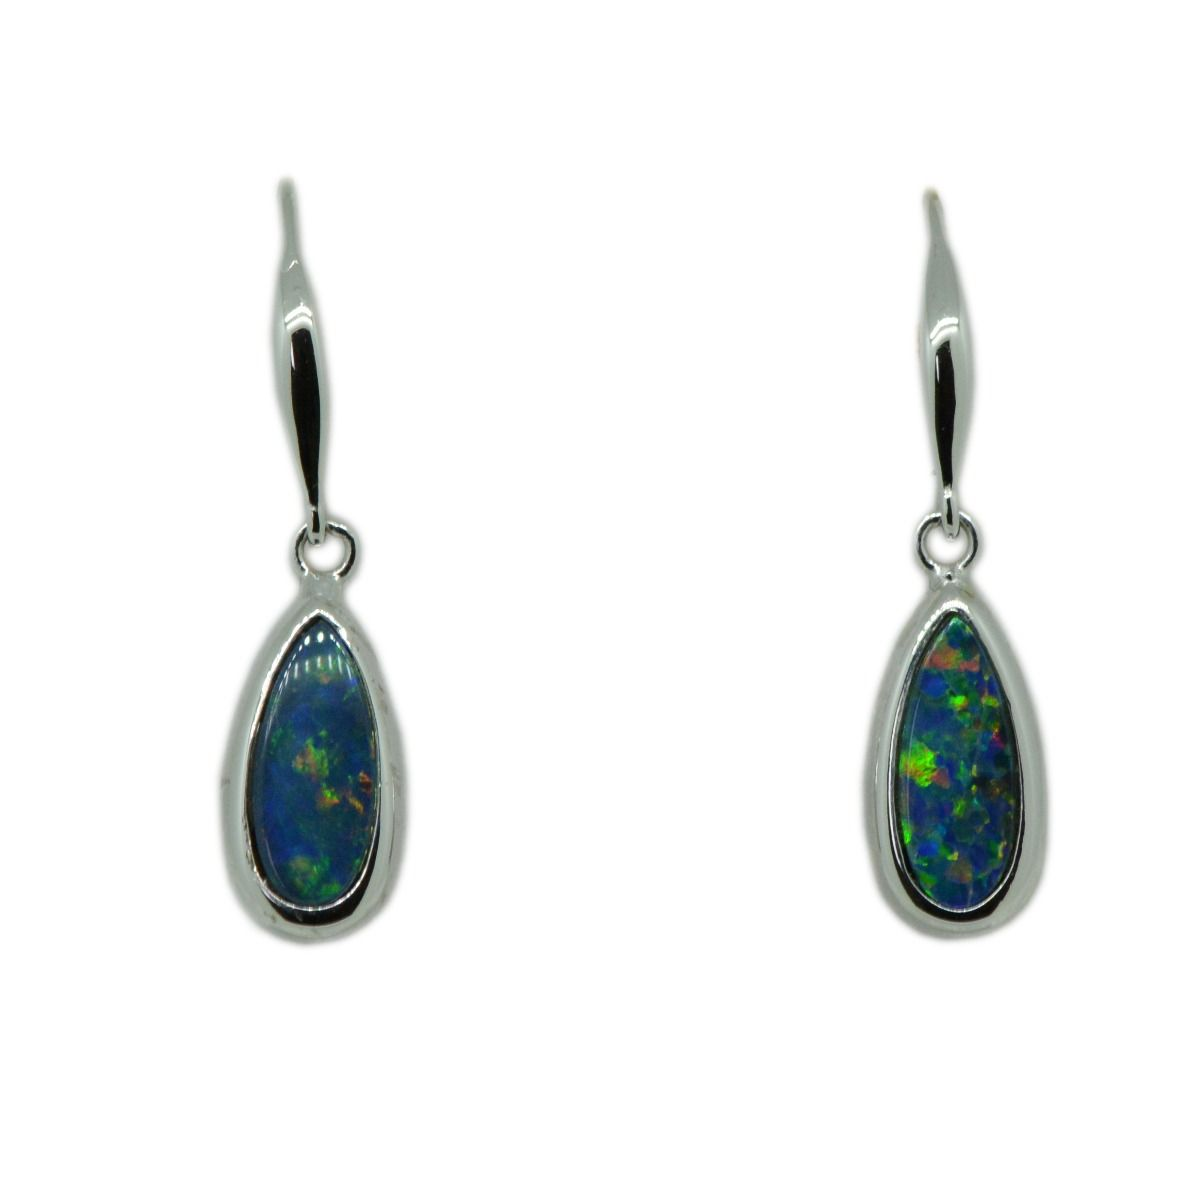 14ct White Gold Bezel Doublet Opal Earrings